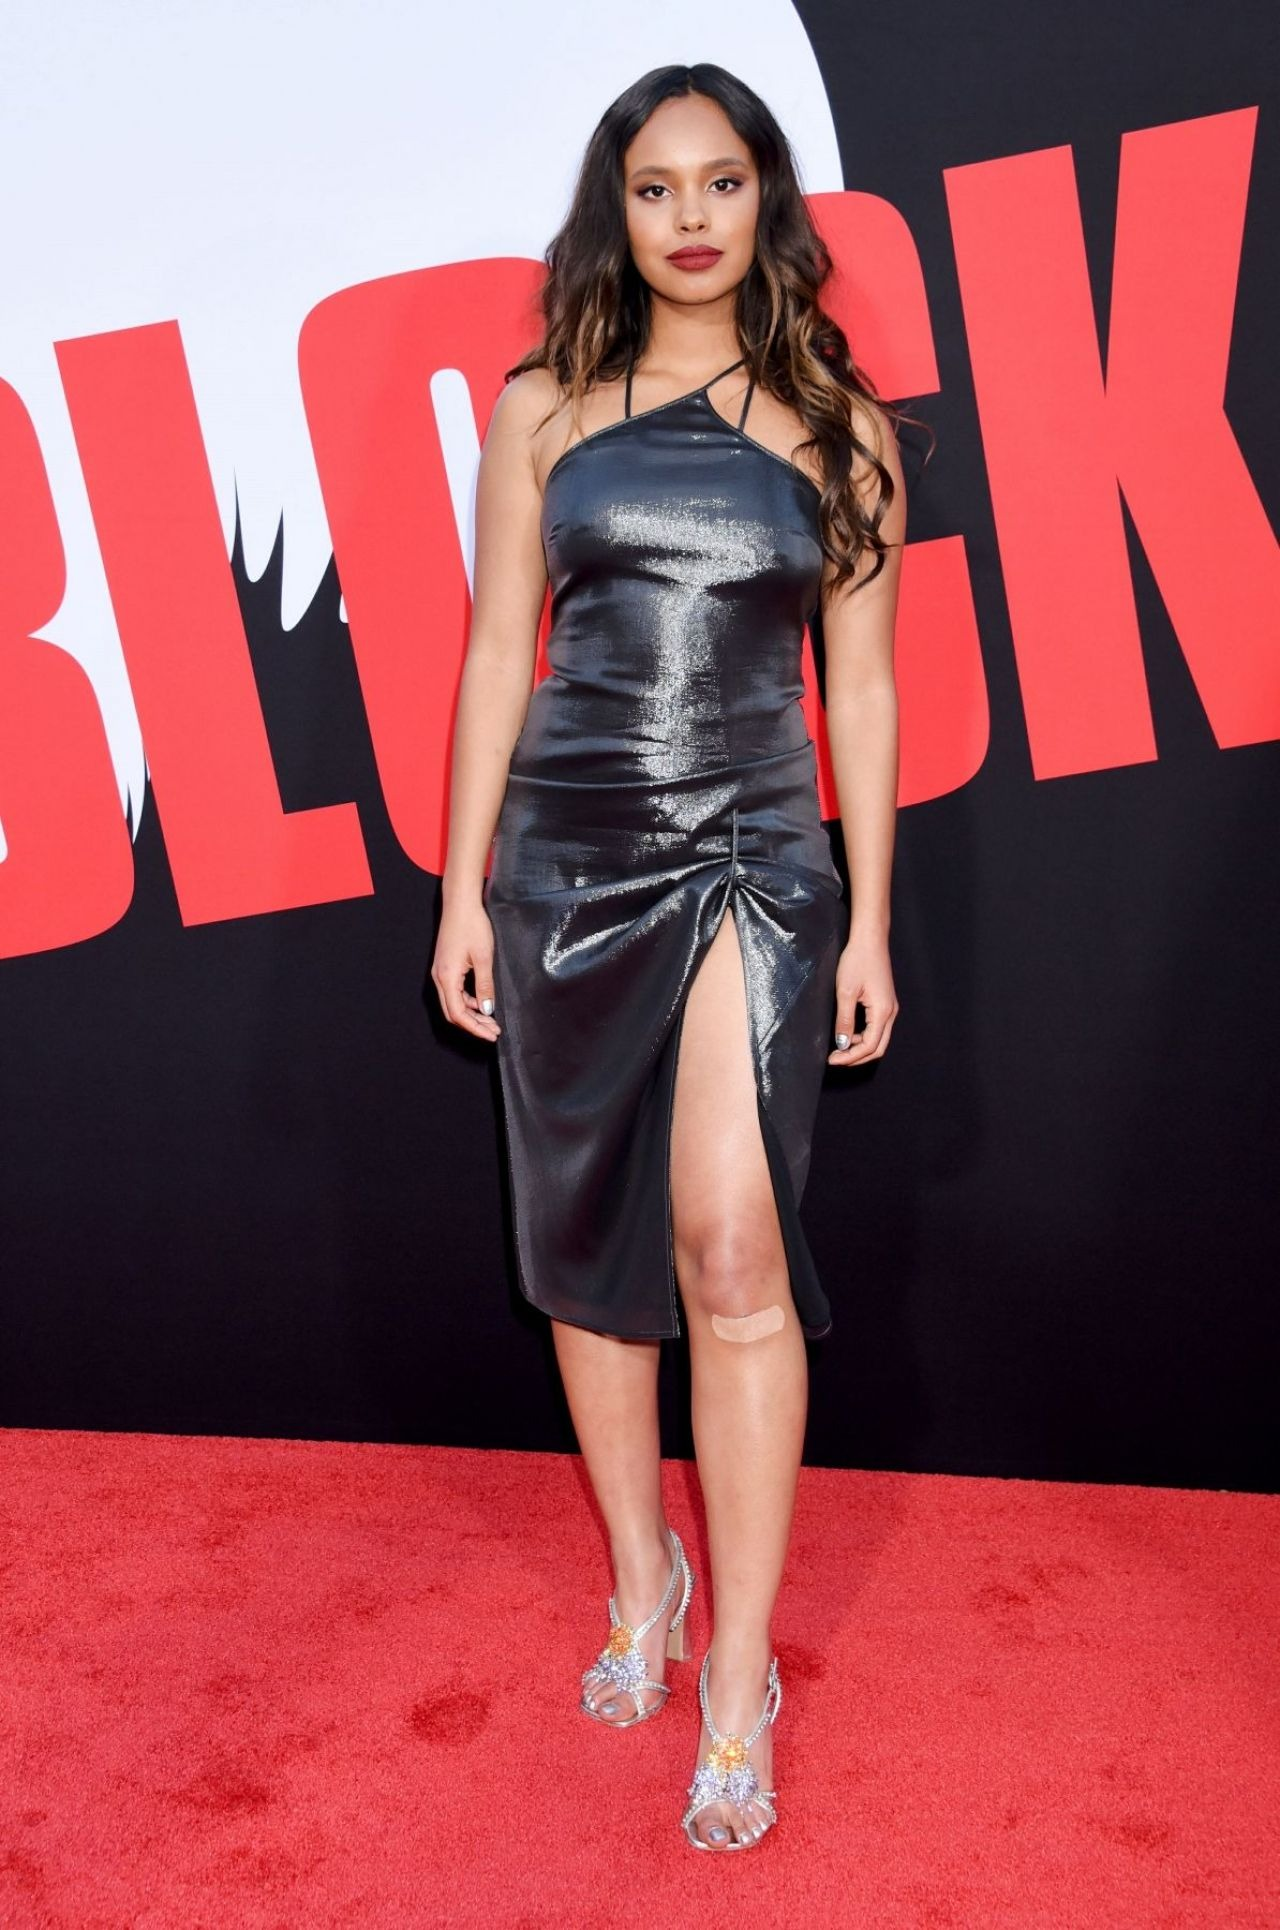 Alisha Boe is attending an event in her glamorous outfit